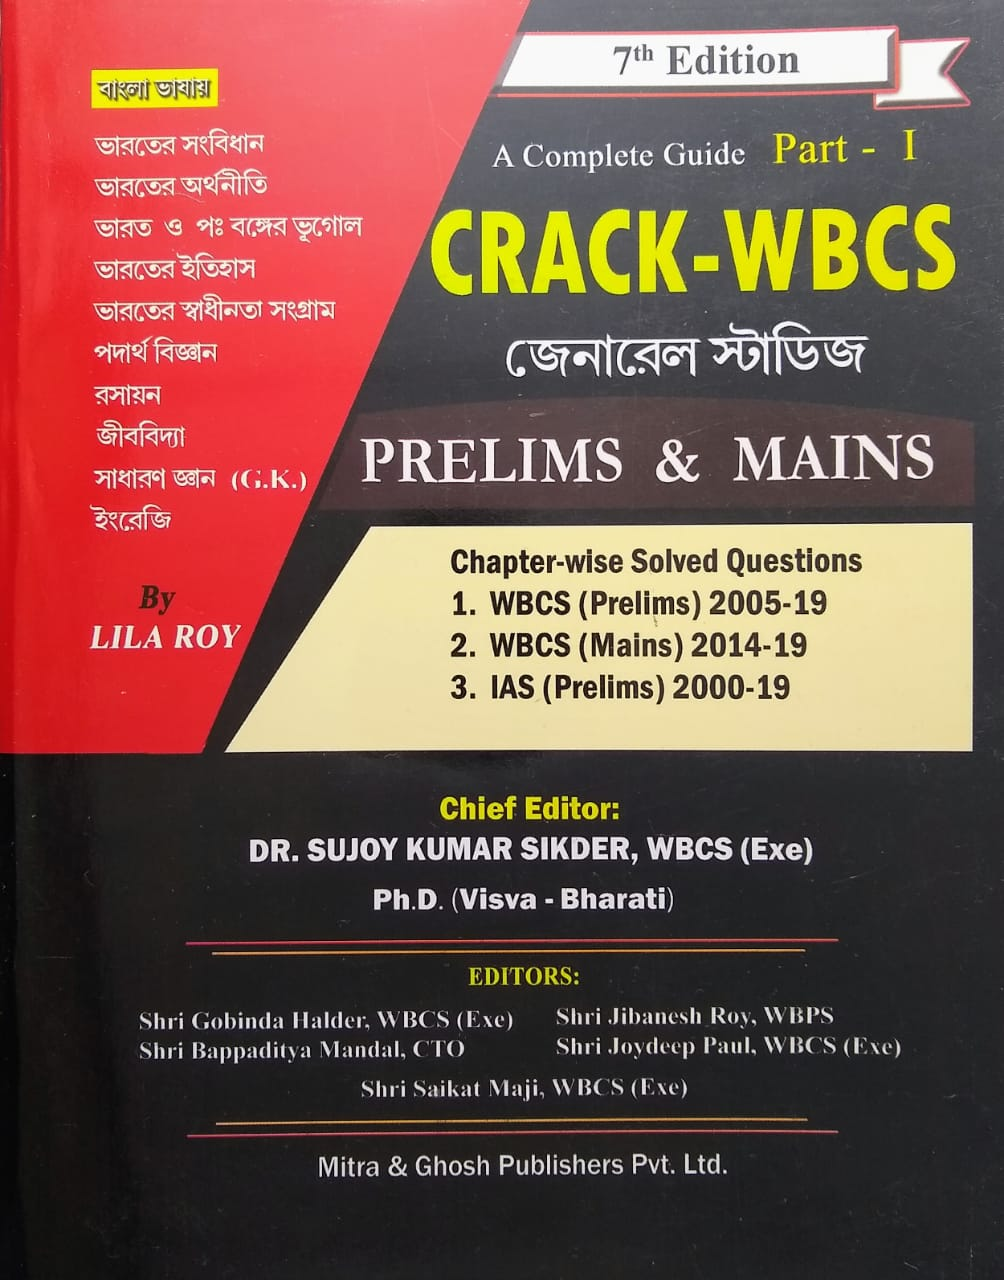 CRACK WBCS GENERAL STUDIES Part 1 New update 2020